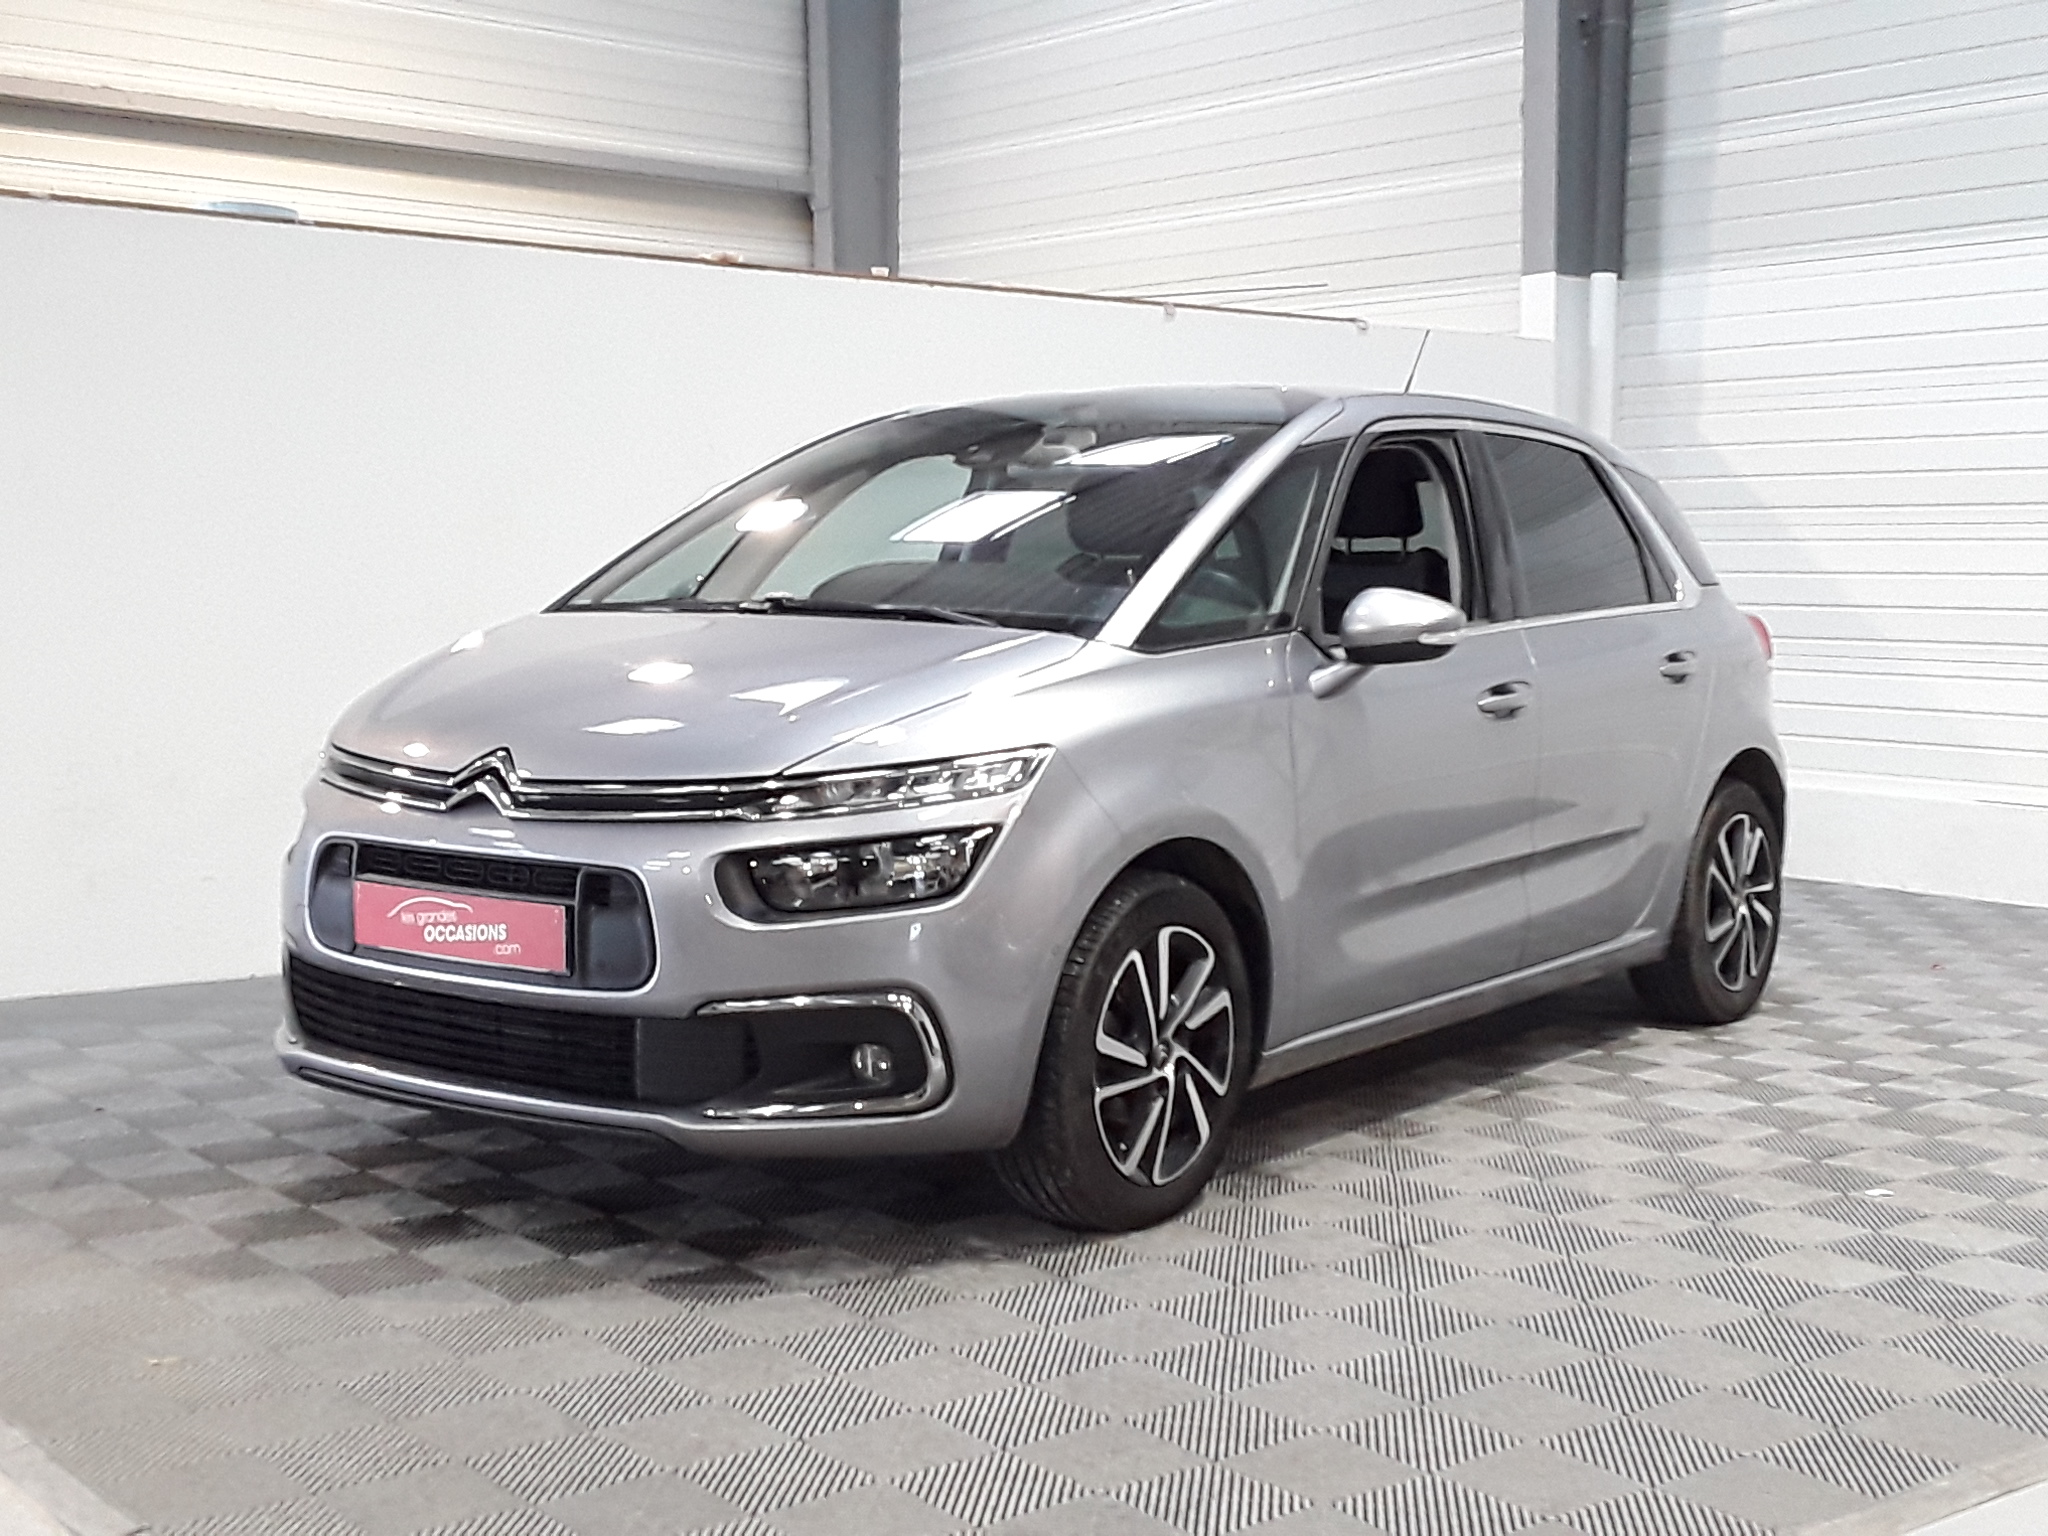 CITROEN C4 PICASSO C4 PICASSO HDI 120 EAT6 FEEL d'occasion